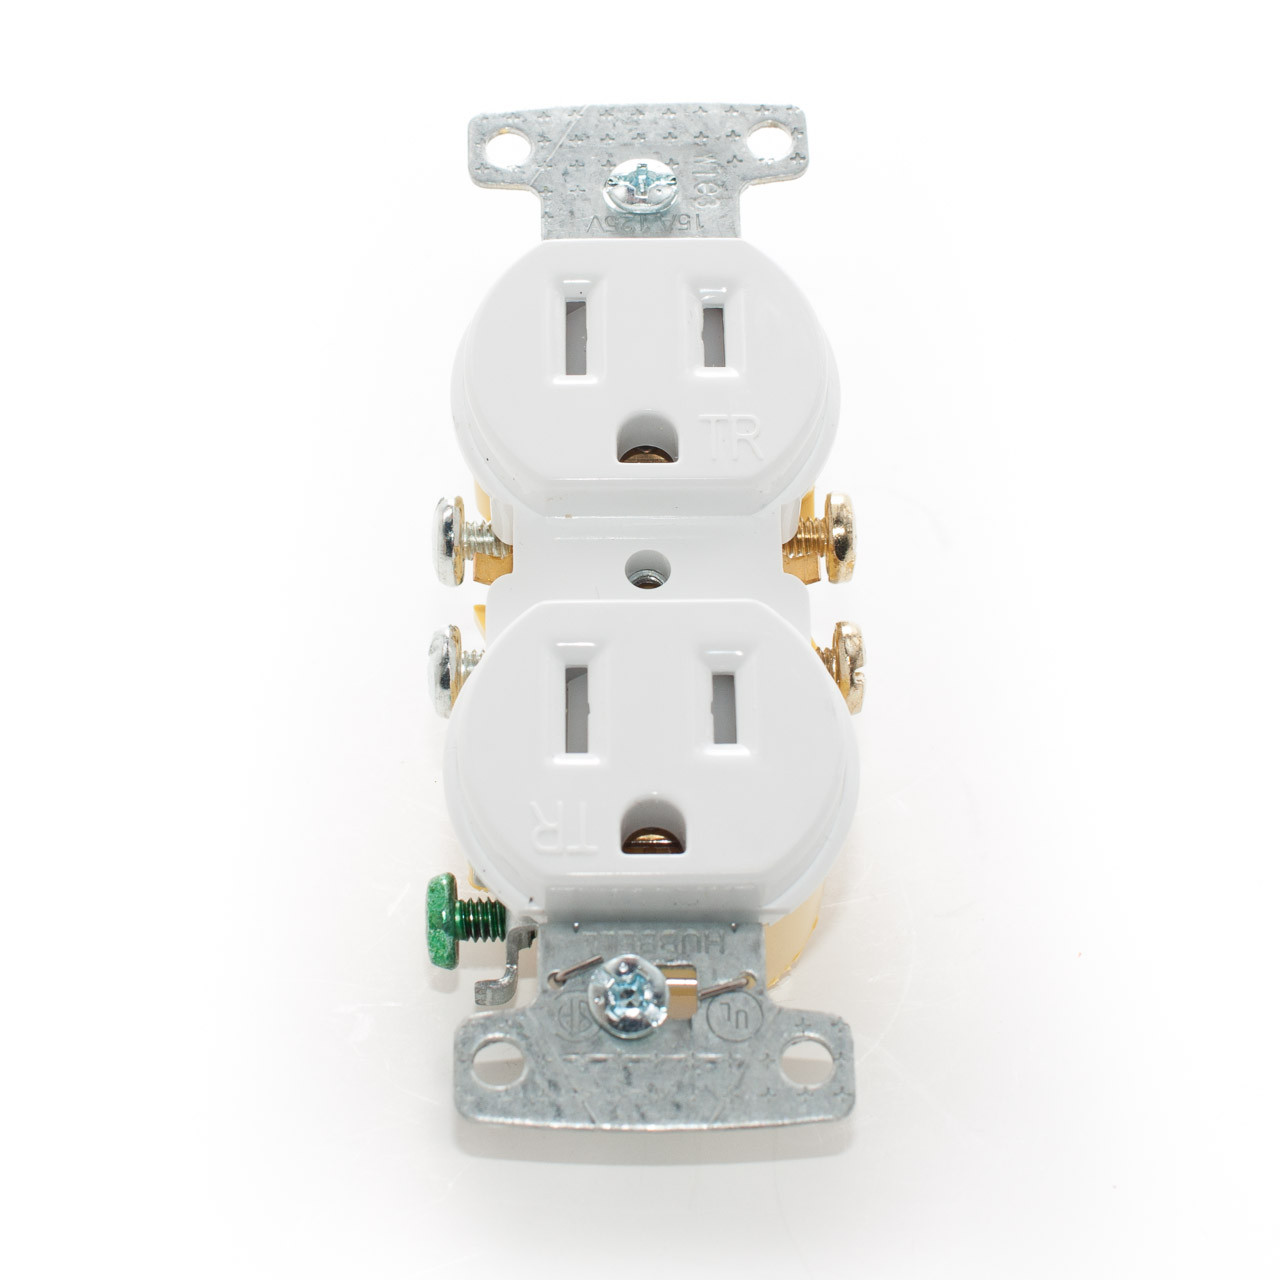 Duplex receptacle 15a 125v tamper resistant white tremtech duplex receptacle 15a 125v tamper resistant white publicscrutiny Image collections